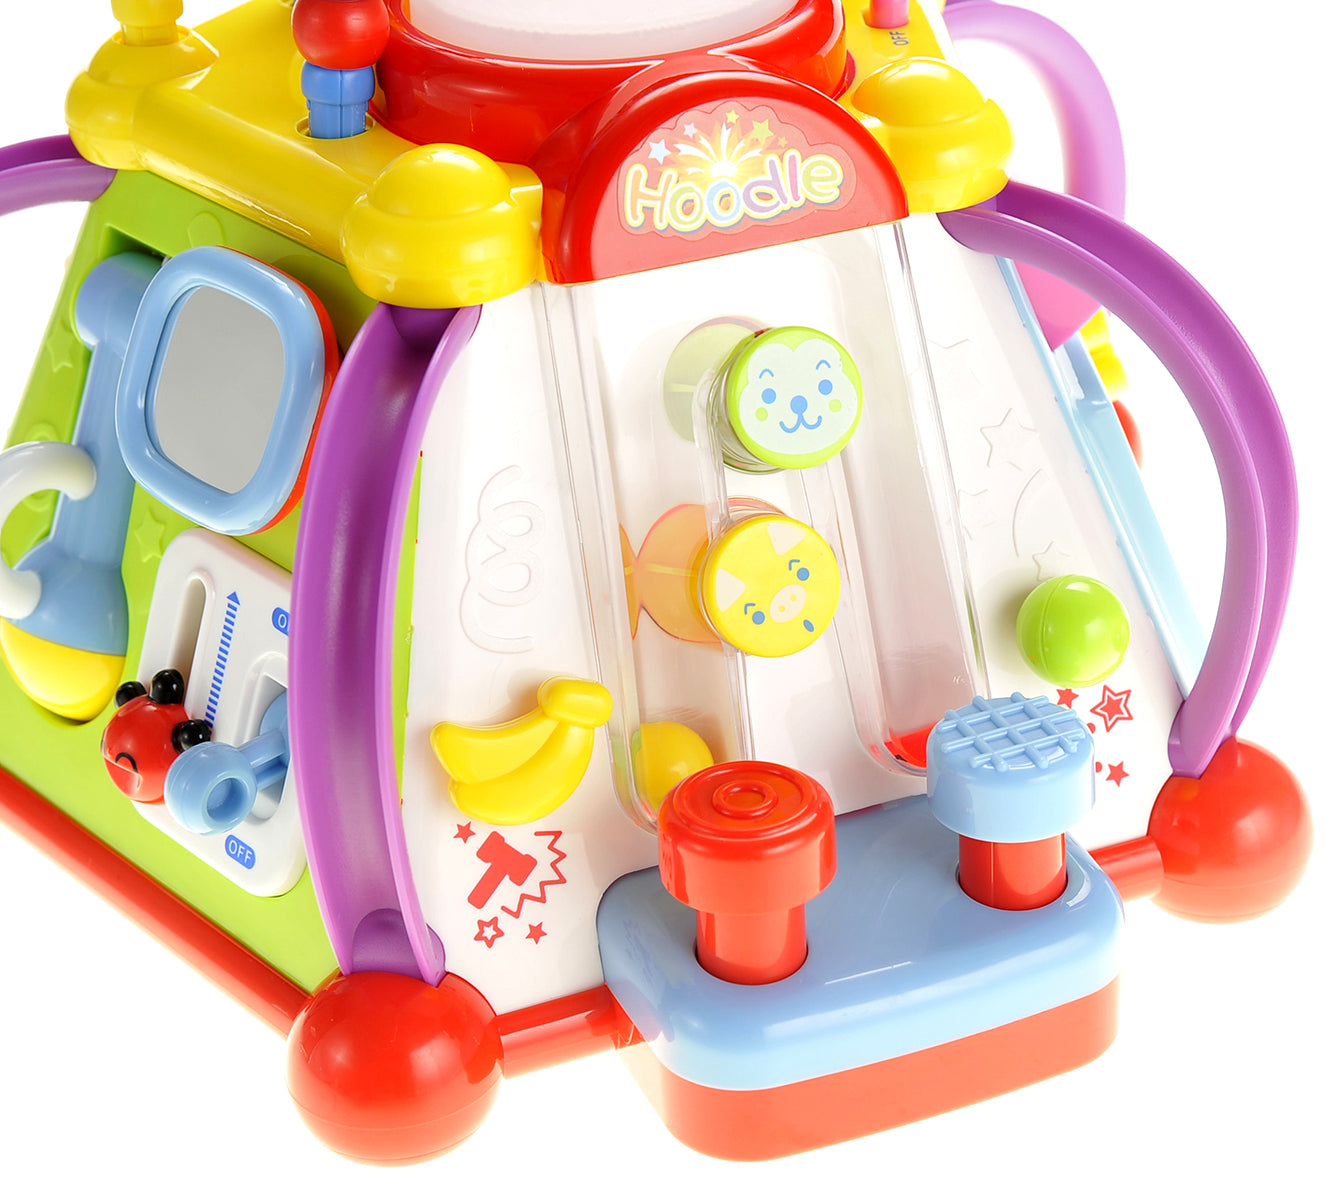 Musical Activity Cube Play Center With Lights